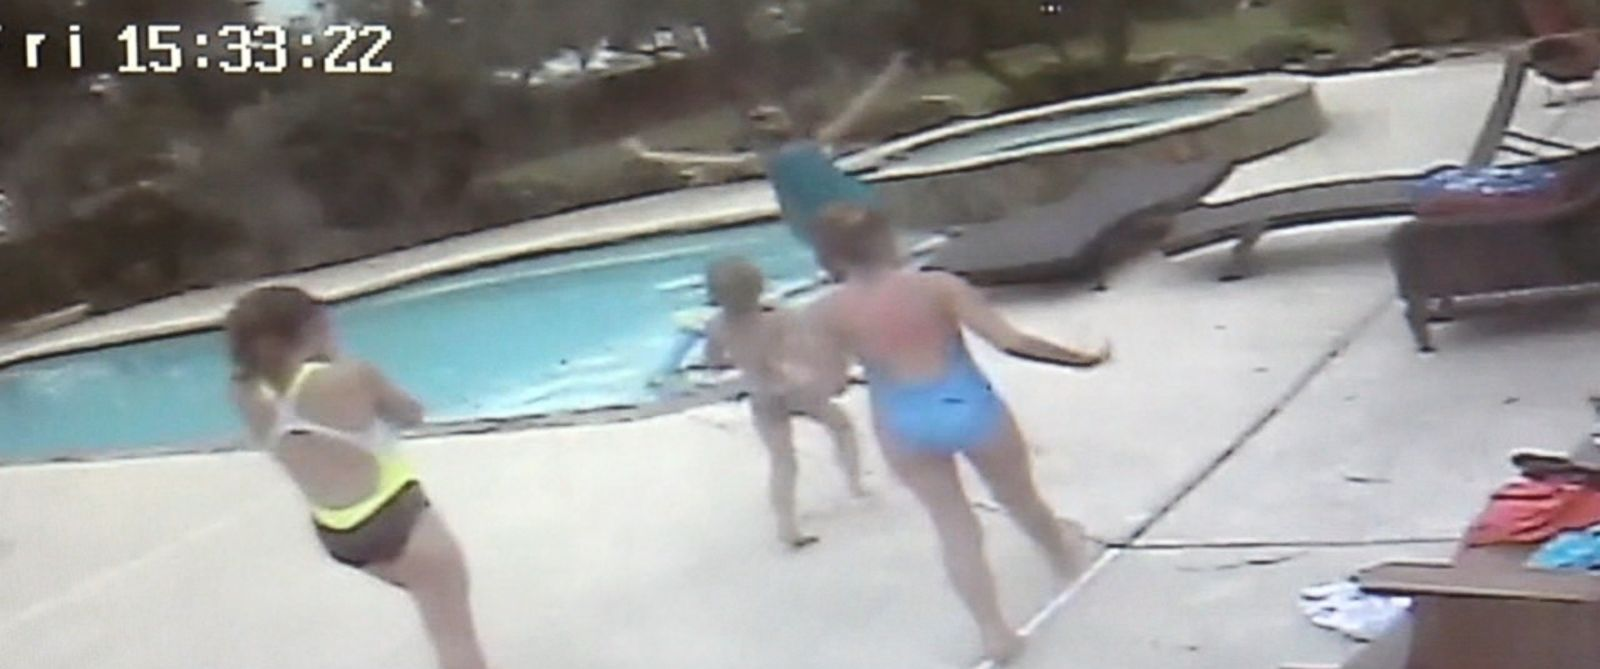 PHOTO: A 5-year-old girl has been hailed a hero after caught on surveillance video saving her mother after she went unconscious in a backyard swimming pool in Portland, Texas, on March 18, 2016.